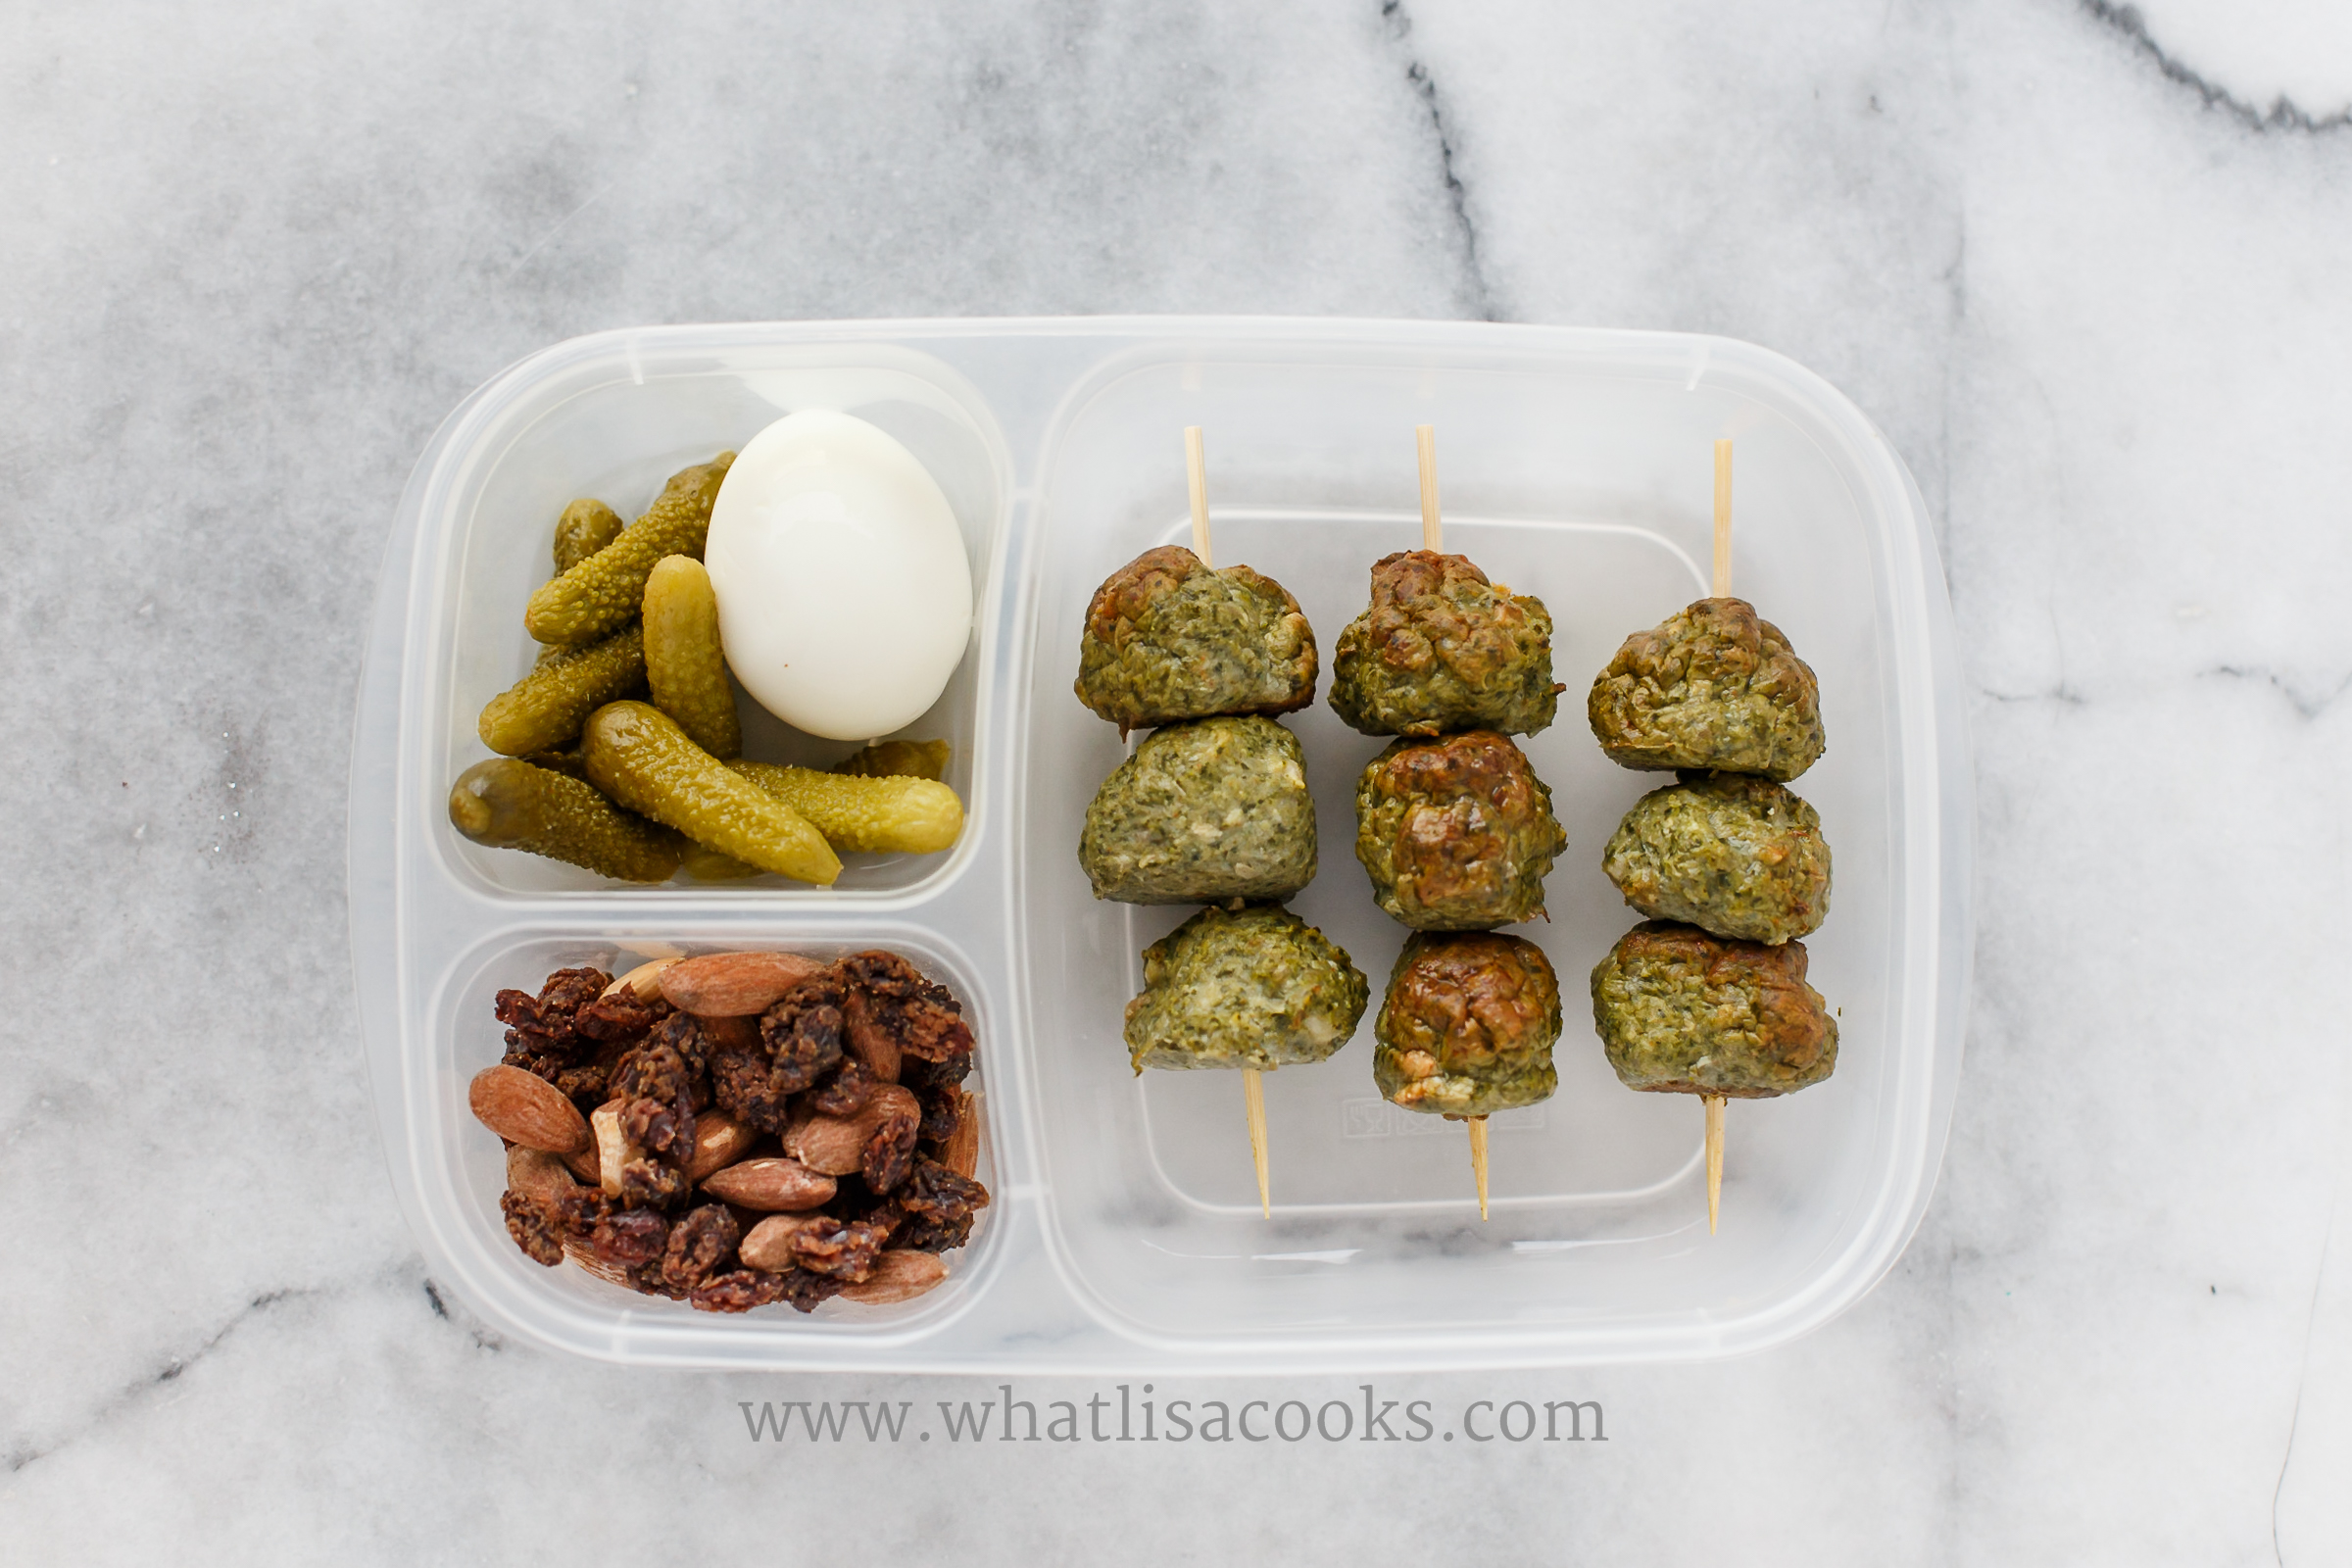 Meatballs with sausage, mushrooms and kale.  Boiled egg, pickles, almonds, raisins.